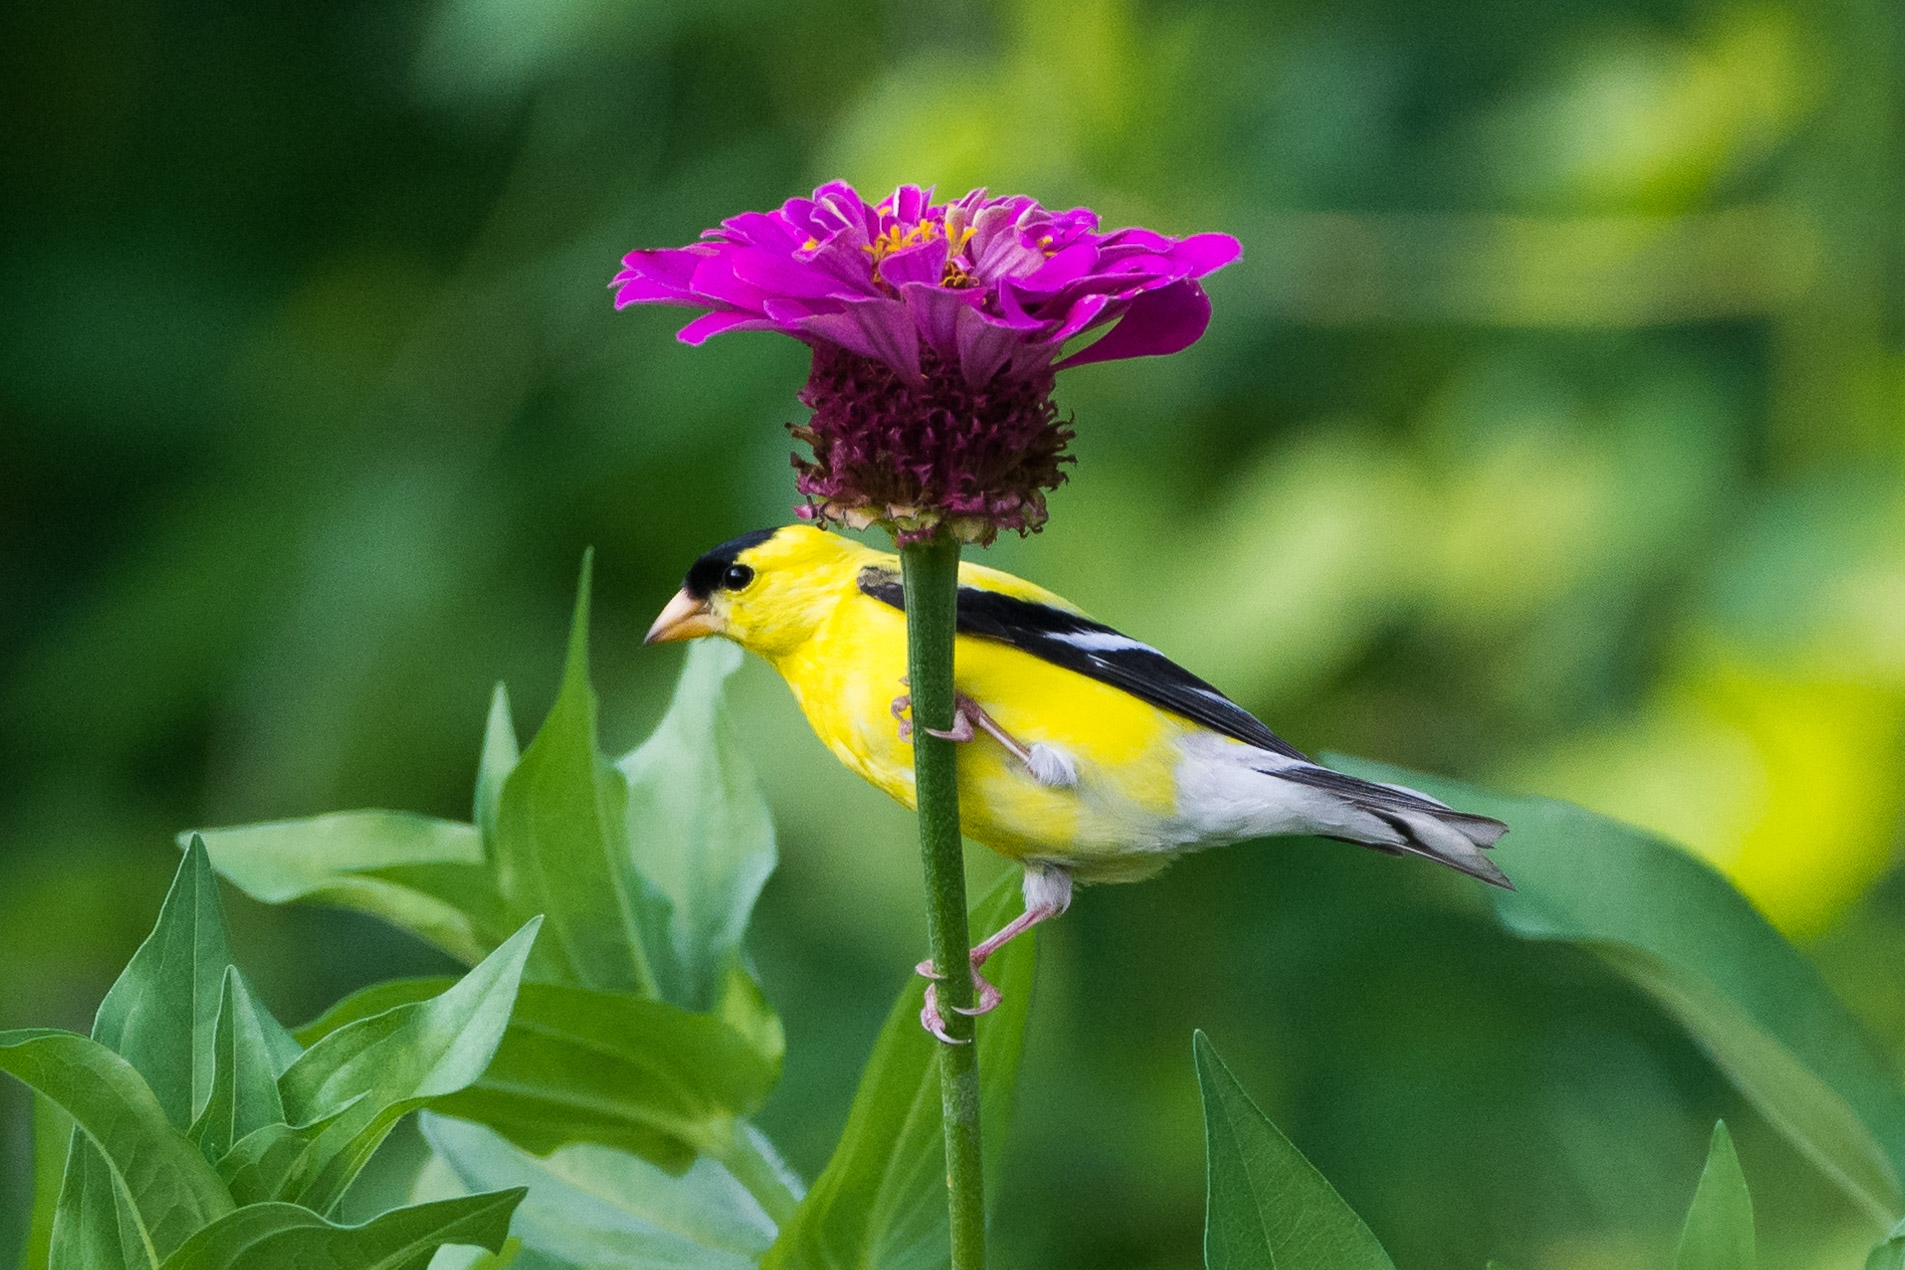 Bird Watching   What makes a bird a bird? Let's find out by looking for some of our feathered friends along our trails. We'll learn how to use binoculars, recognize birds by their call, and see if we find different birds in different habitats.